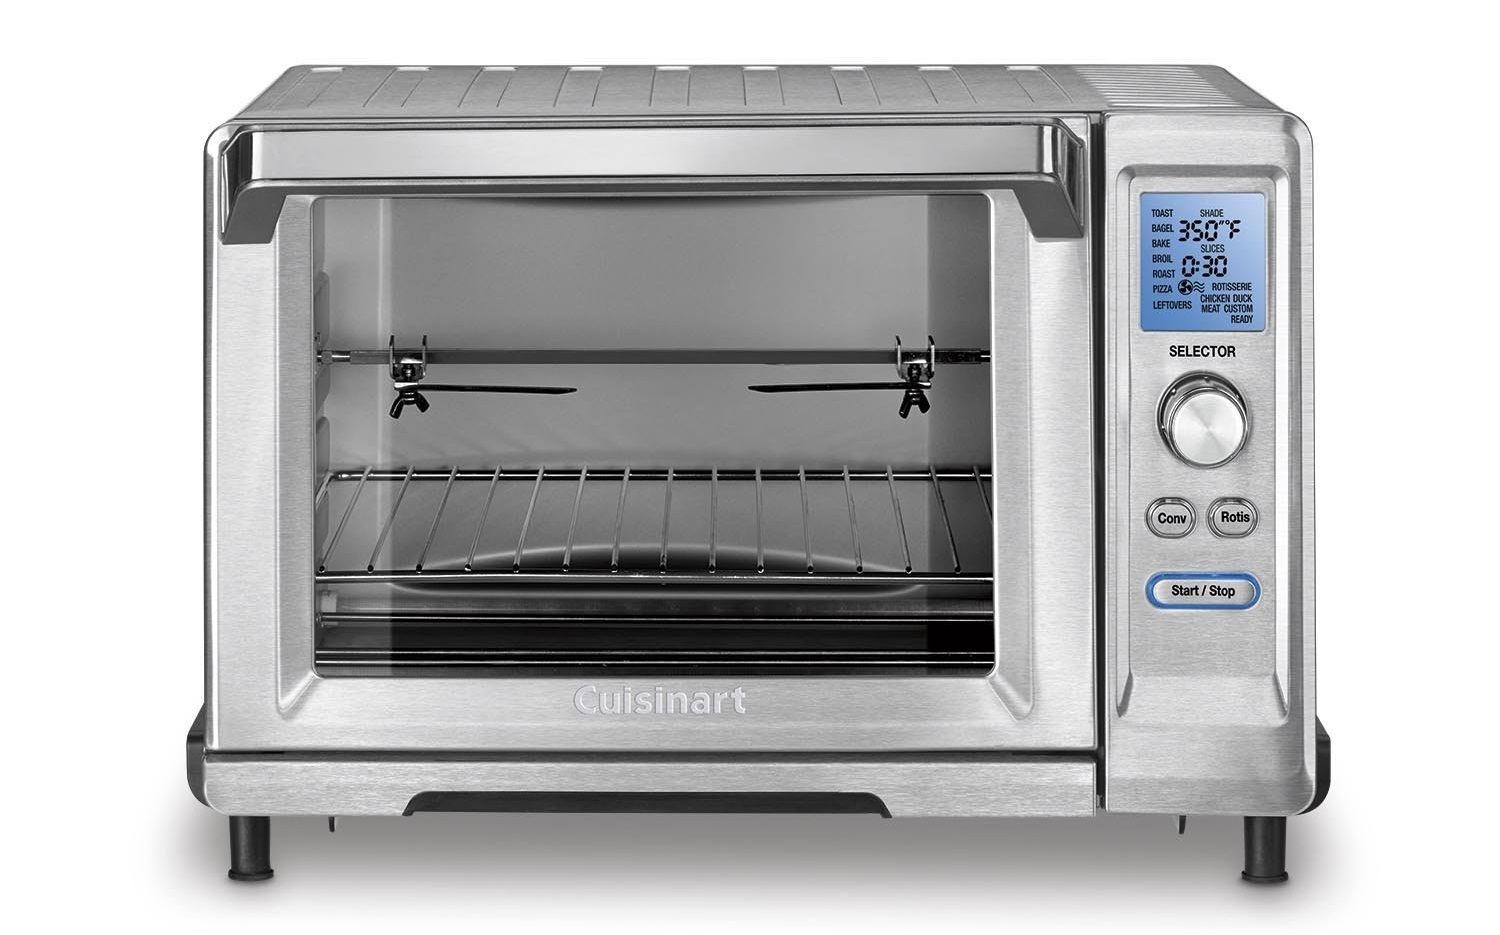 Cuisinart TOB-200 Rotisserie Toaster Oven Review